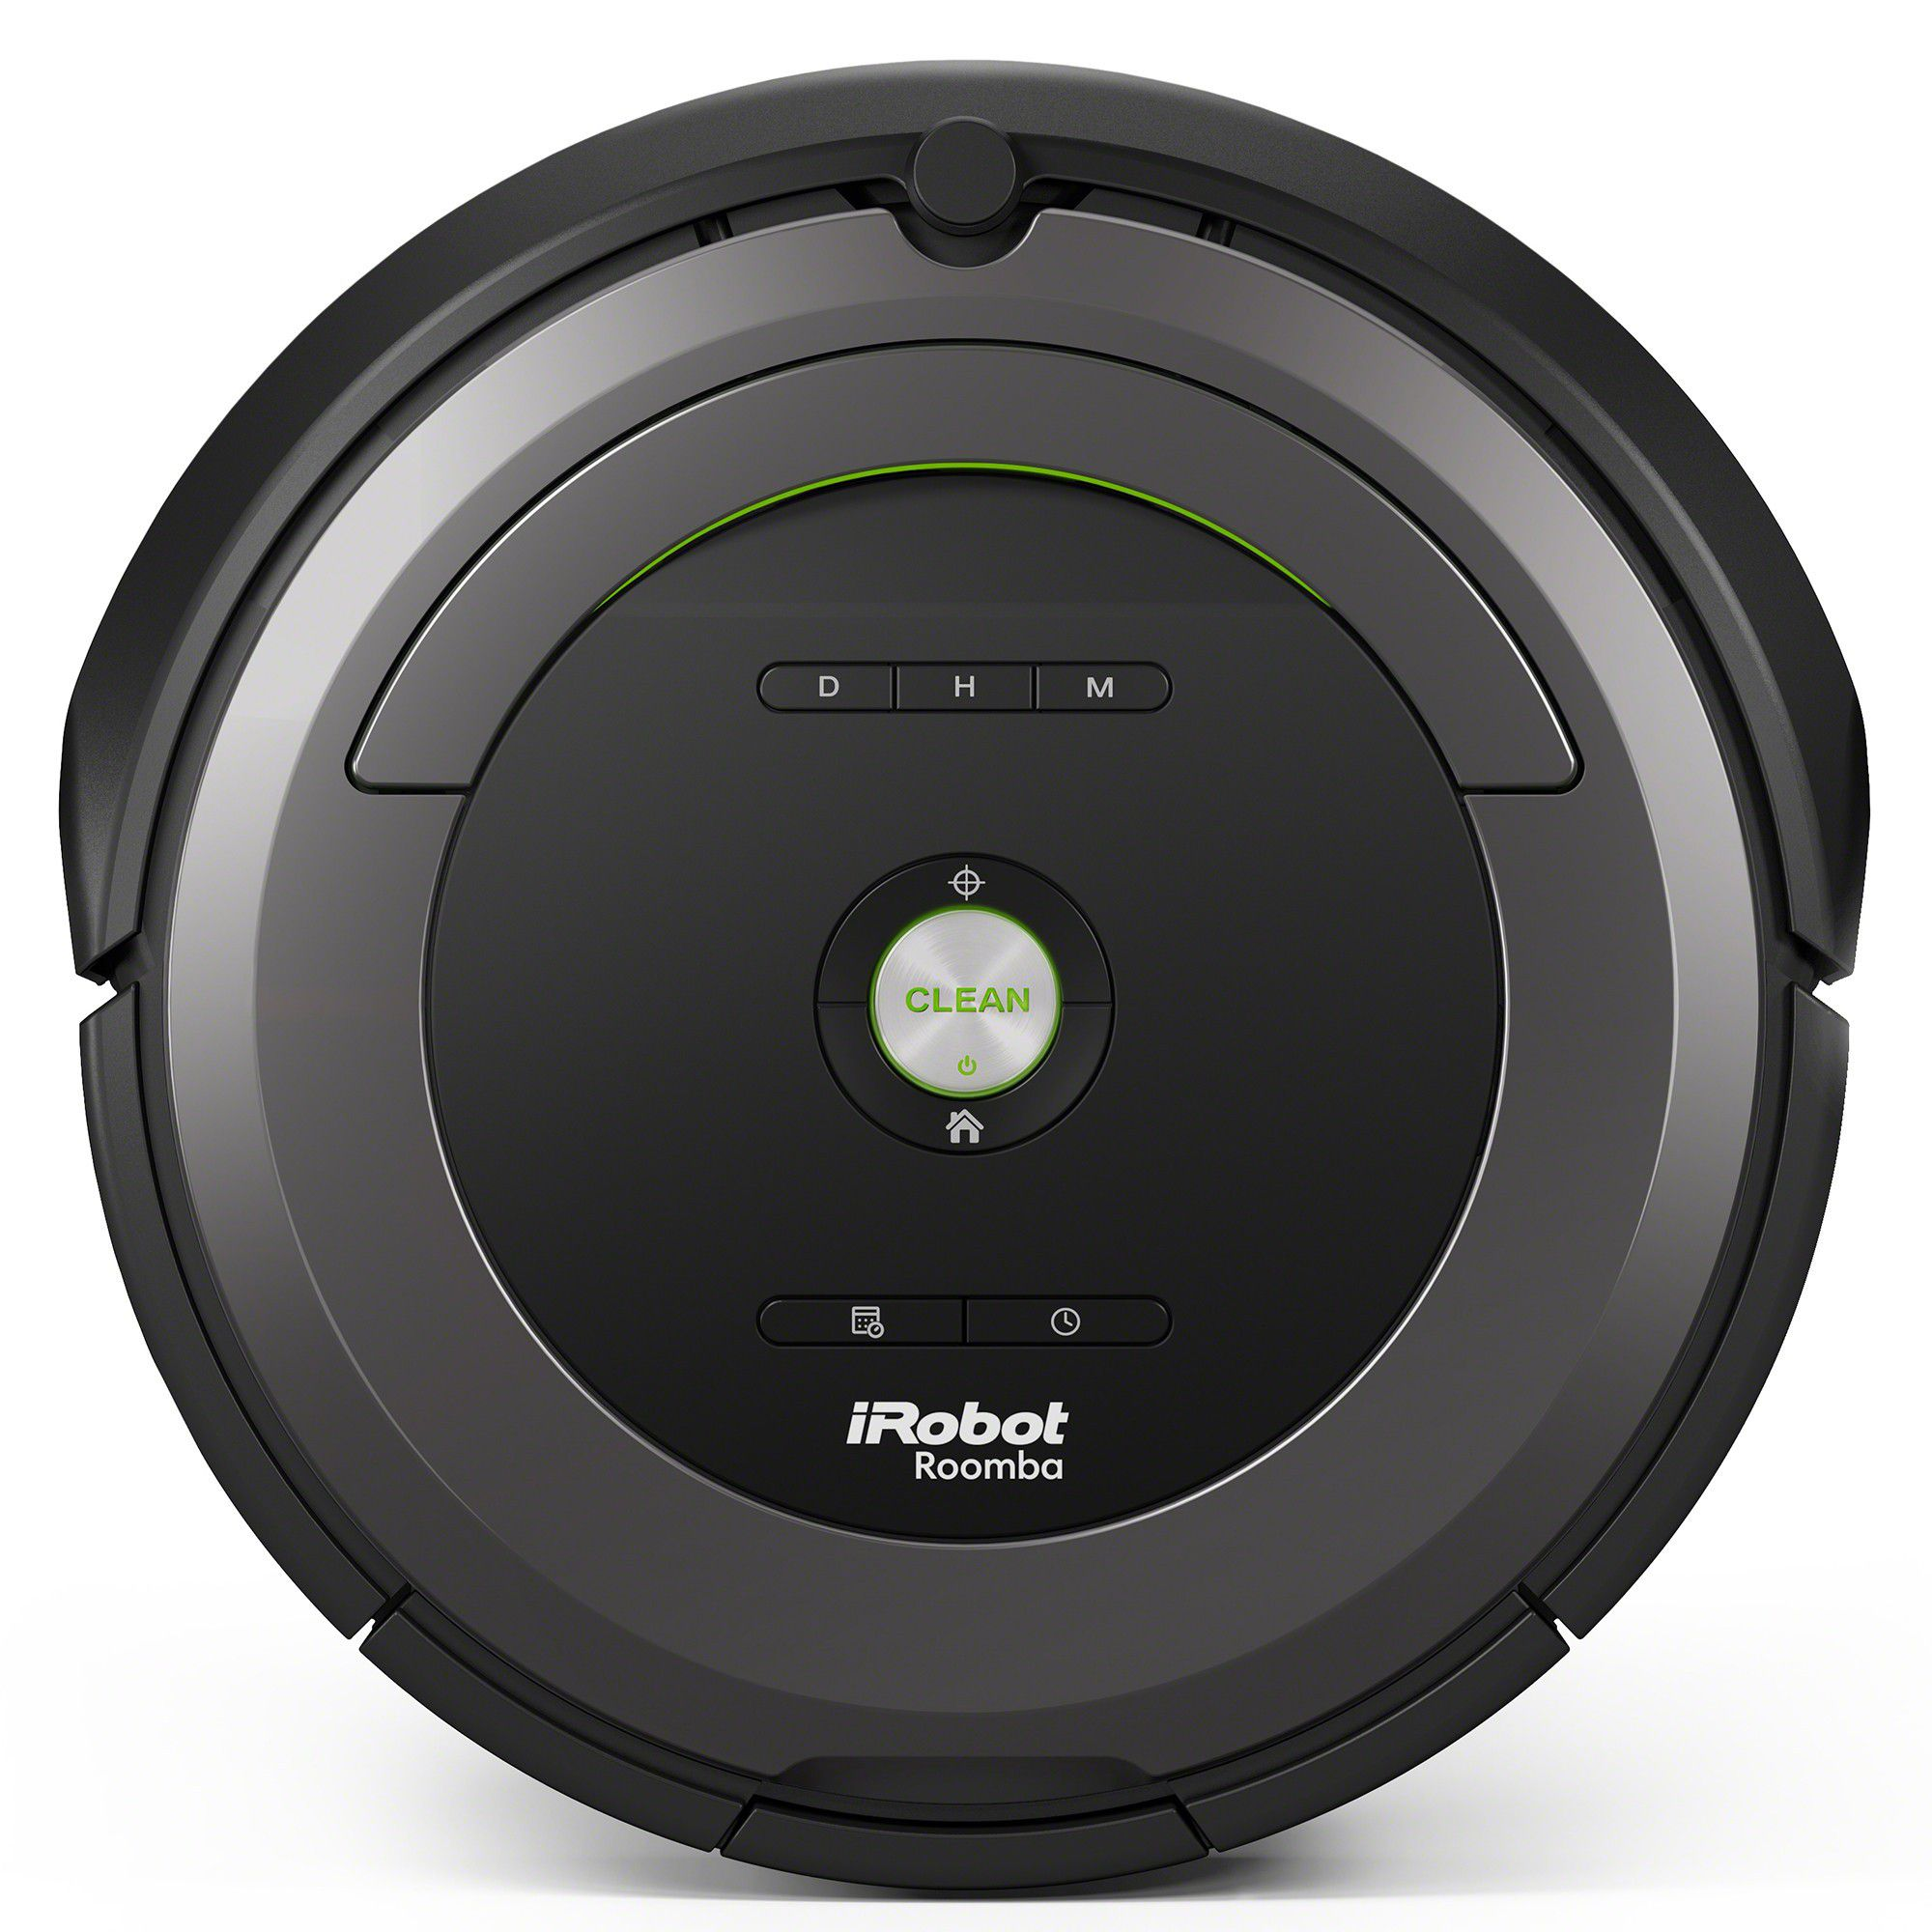 irobot roomba 681 disponibilit caract ristiques meilleurs prix. Black Bedroom Furniture Sets. Home Design Ideas